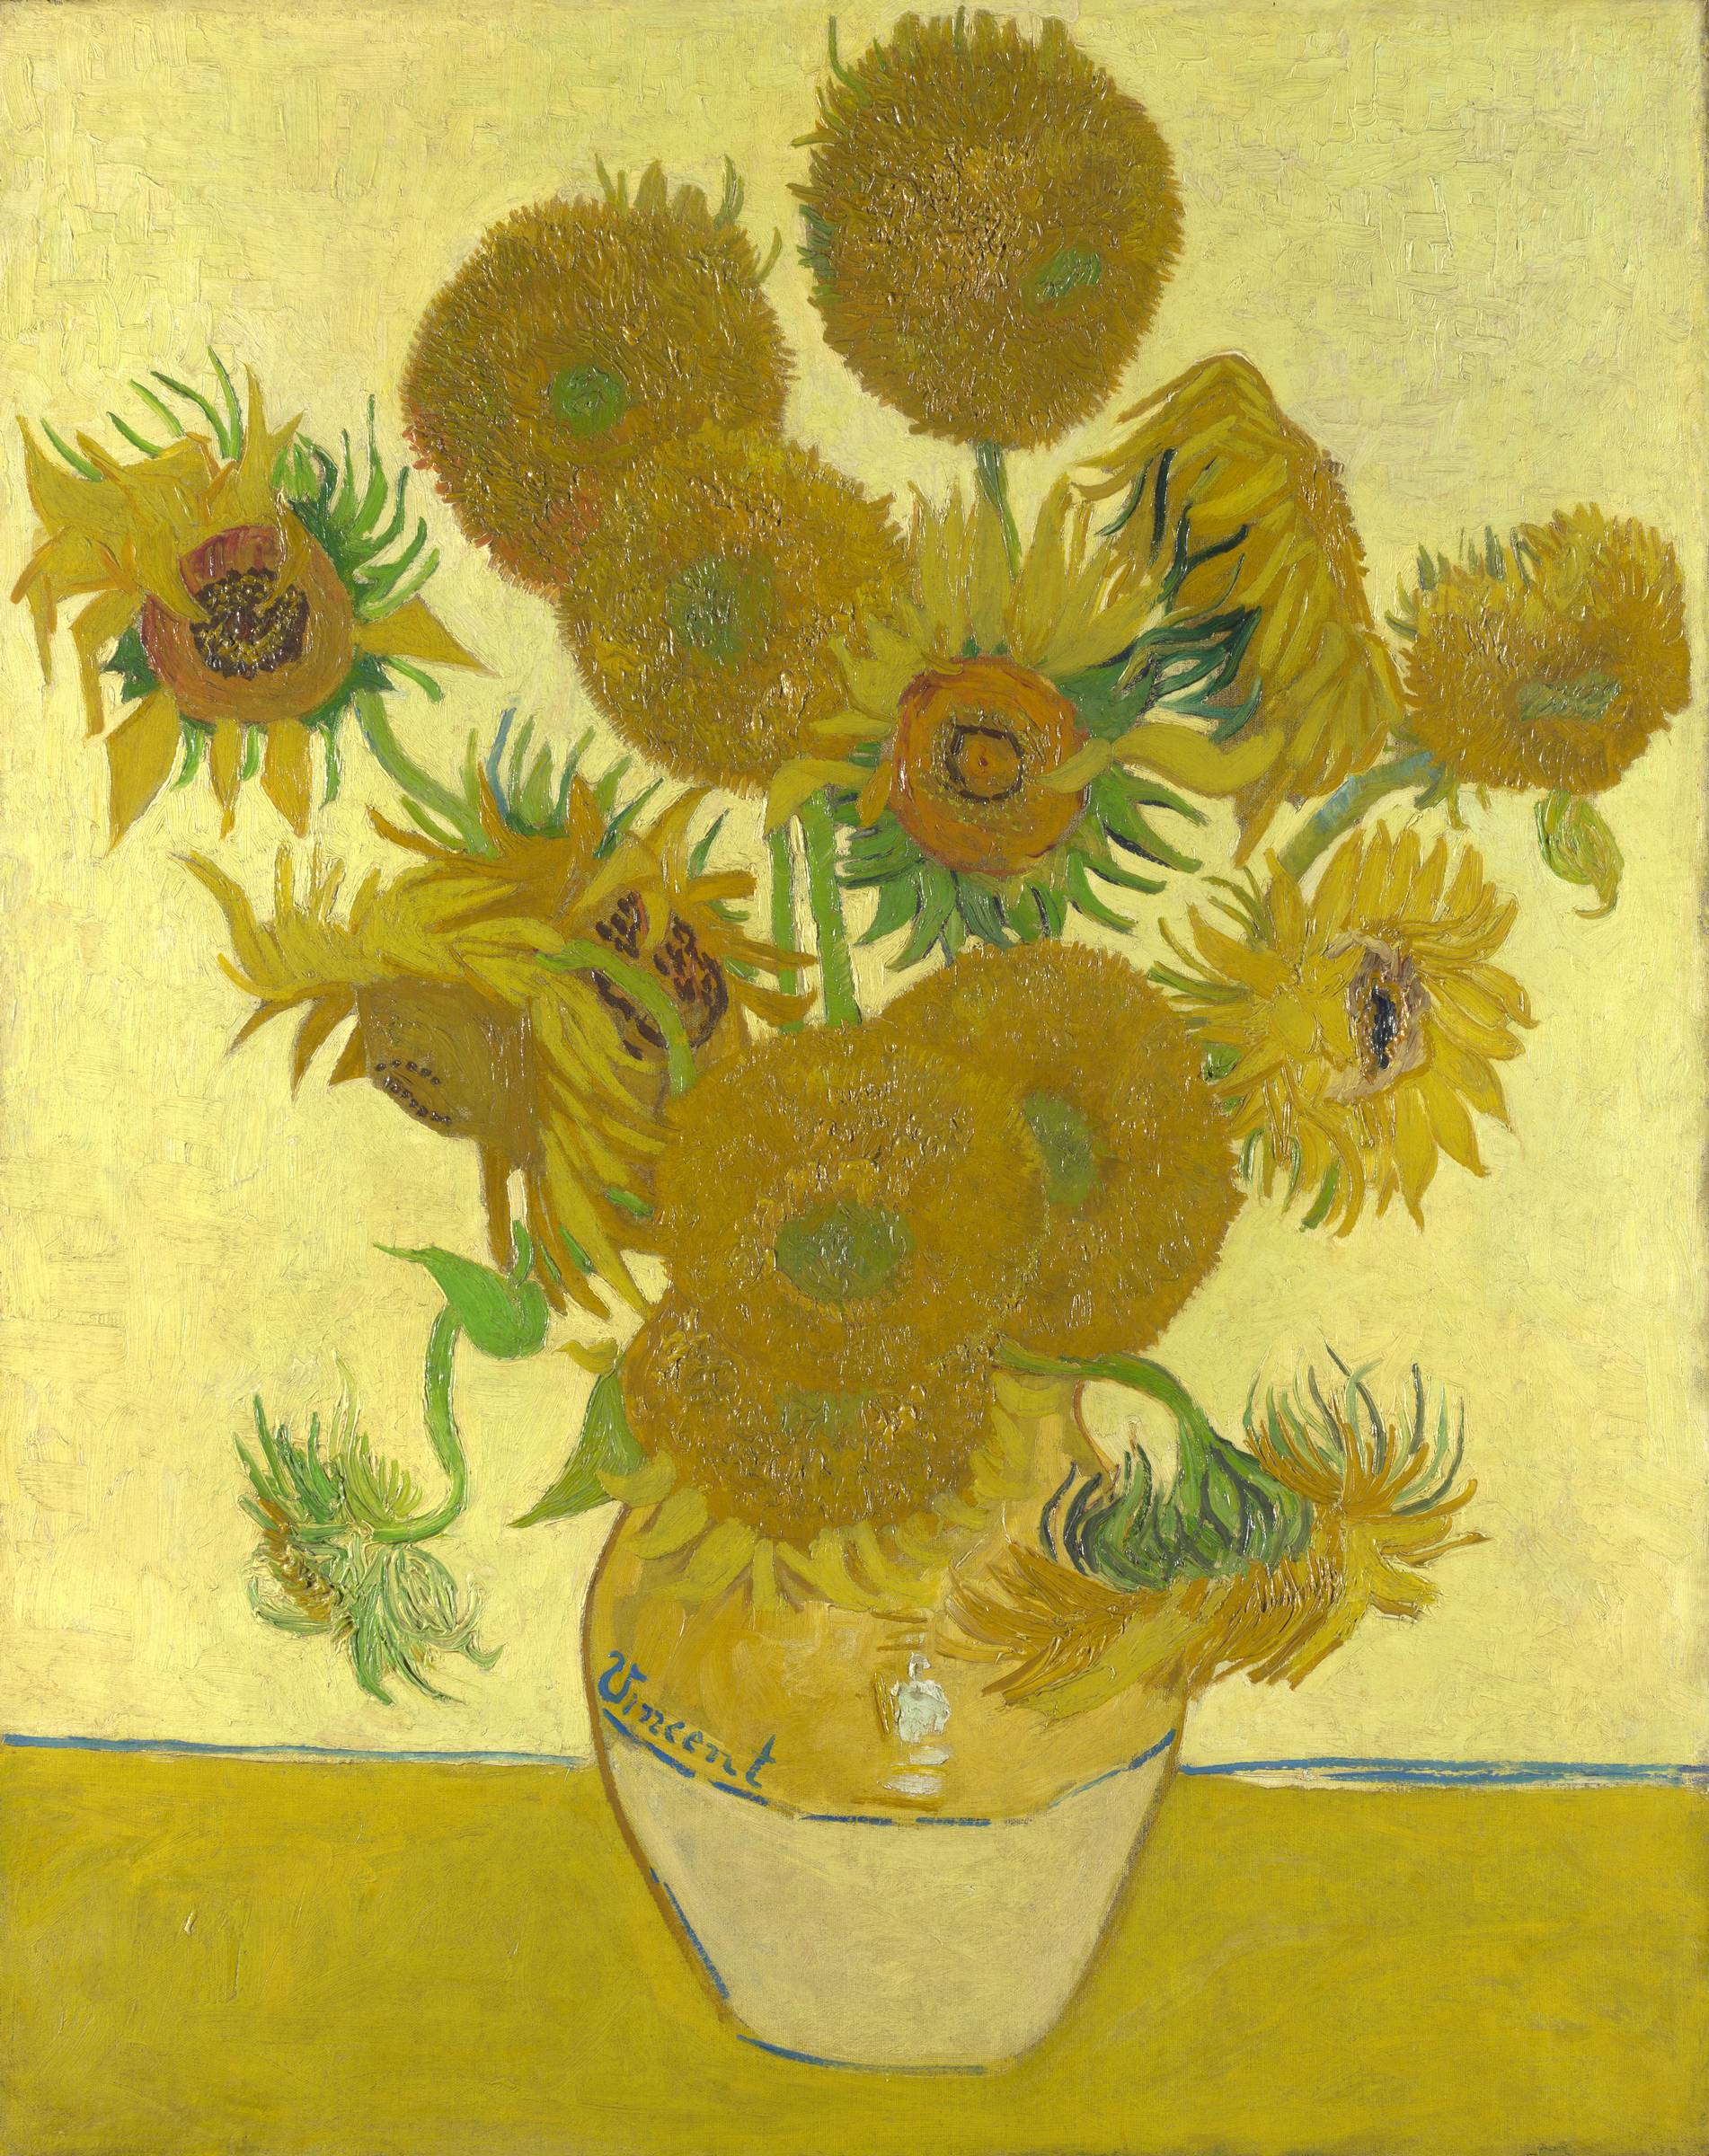 Vincent Van Gogh Paintings Sunflowers Artboredom Flower Vendoring Bicycle Riding Animal Holding